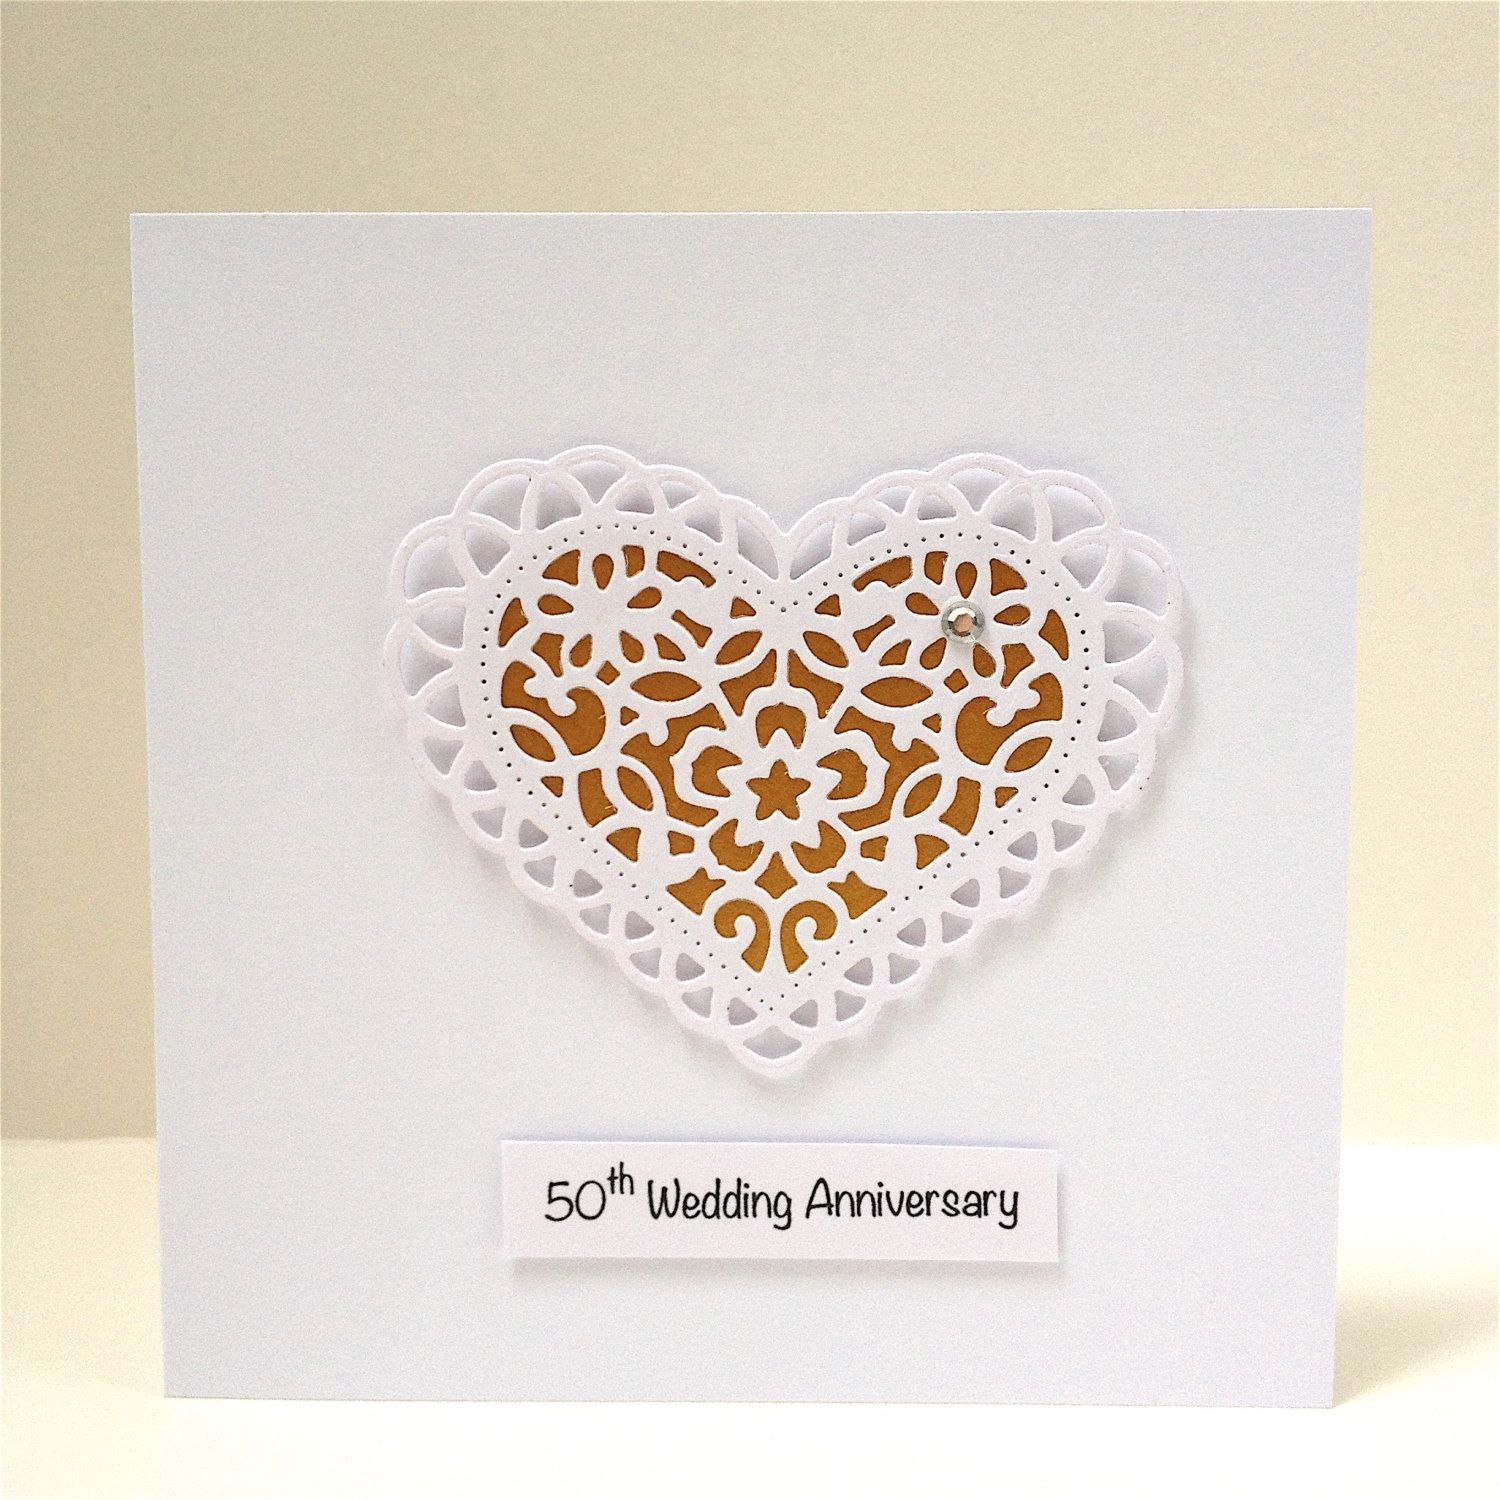 50th Wedding Anniversary Card Golden Wedding Anniversary 50th